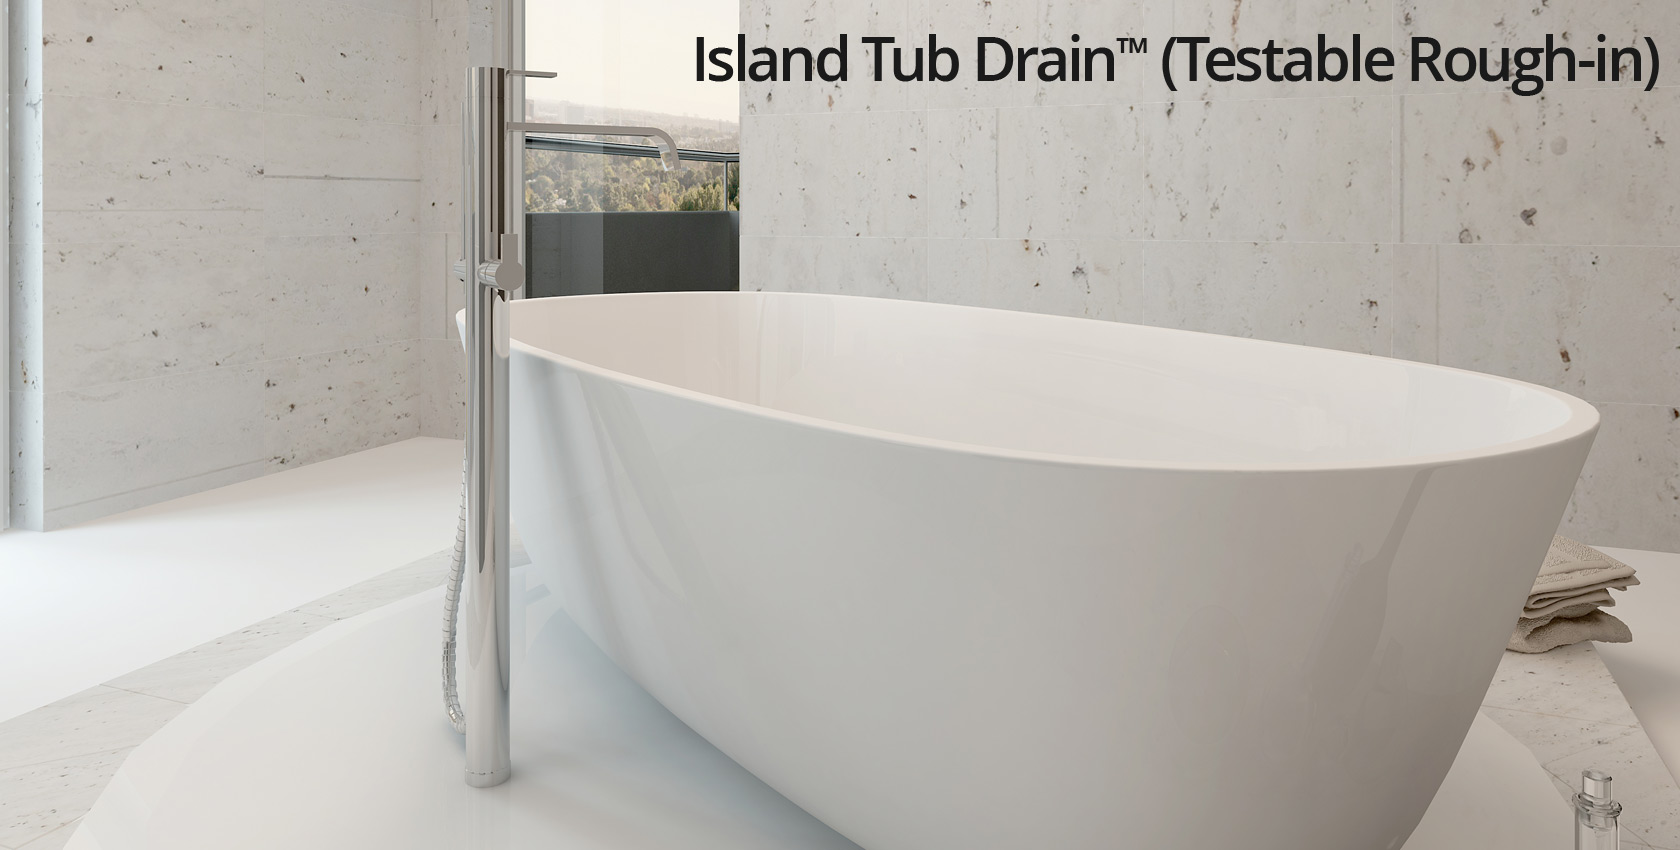 hight resolution of island tub drain testable rough in